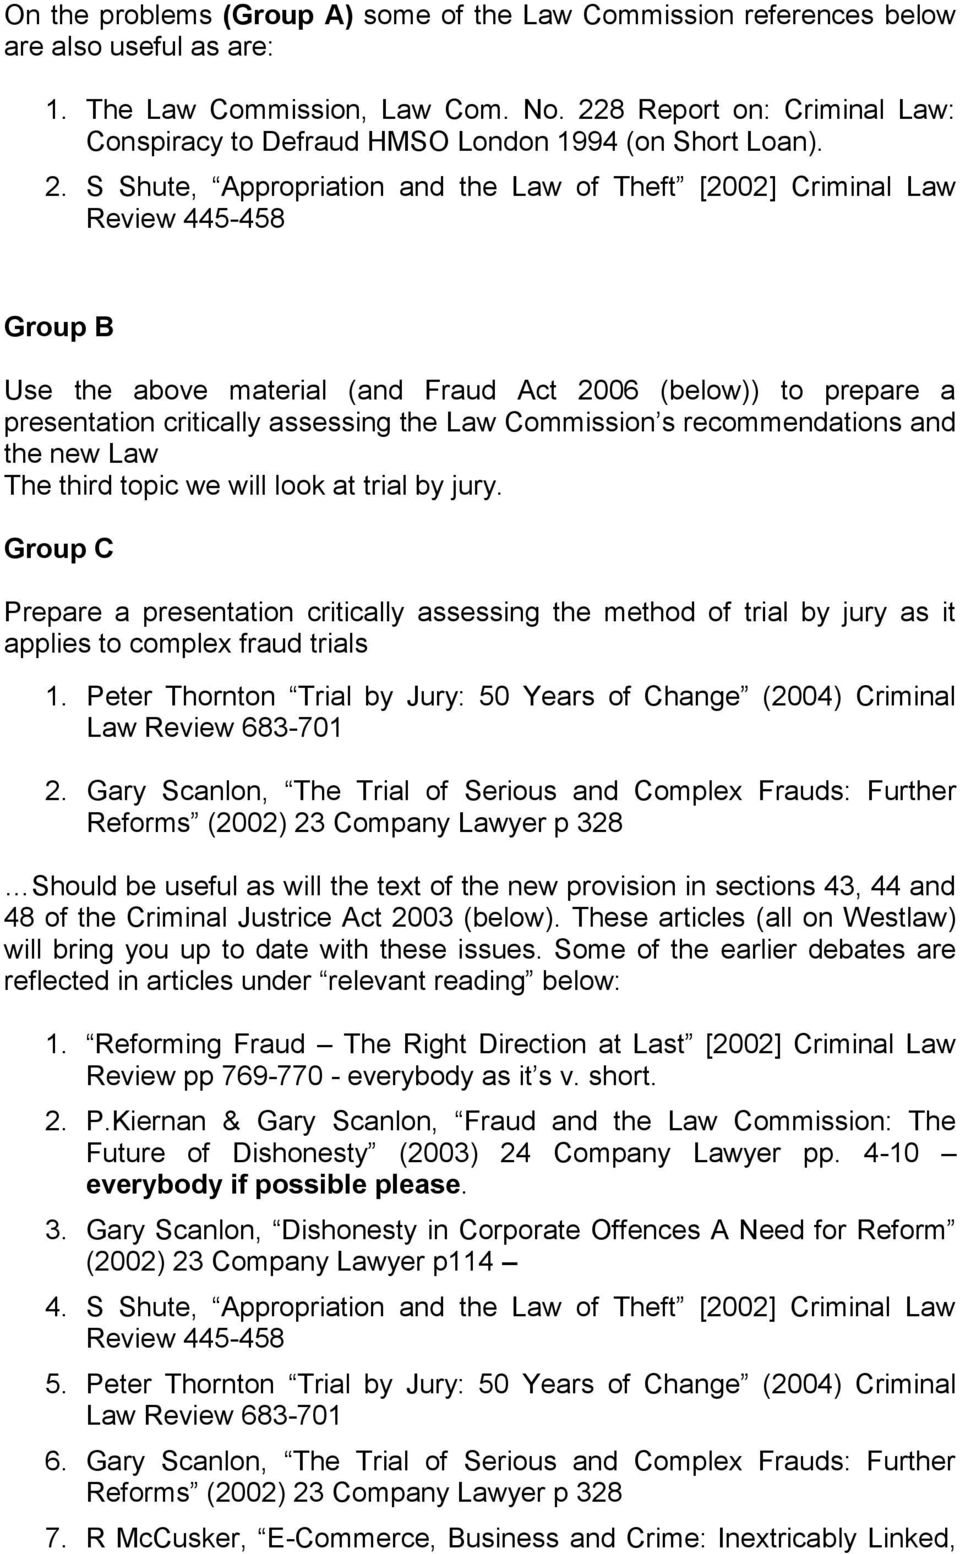 S Shute, Appropriation and the Law of Theft [2002] Criminal Law Review 445-458 Group B Use the above material (and Fraud Act 2006 (below)) to prepare a presentation critically assessing the Law